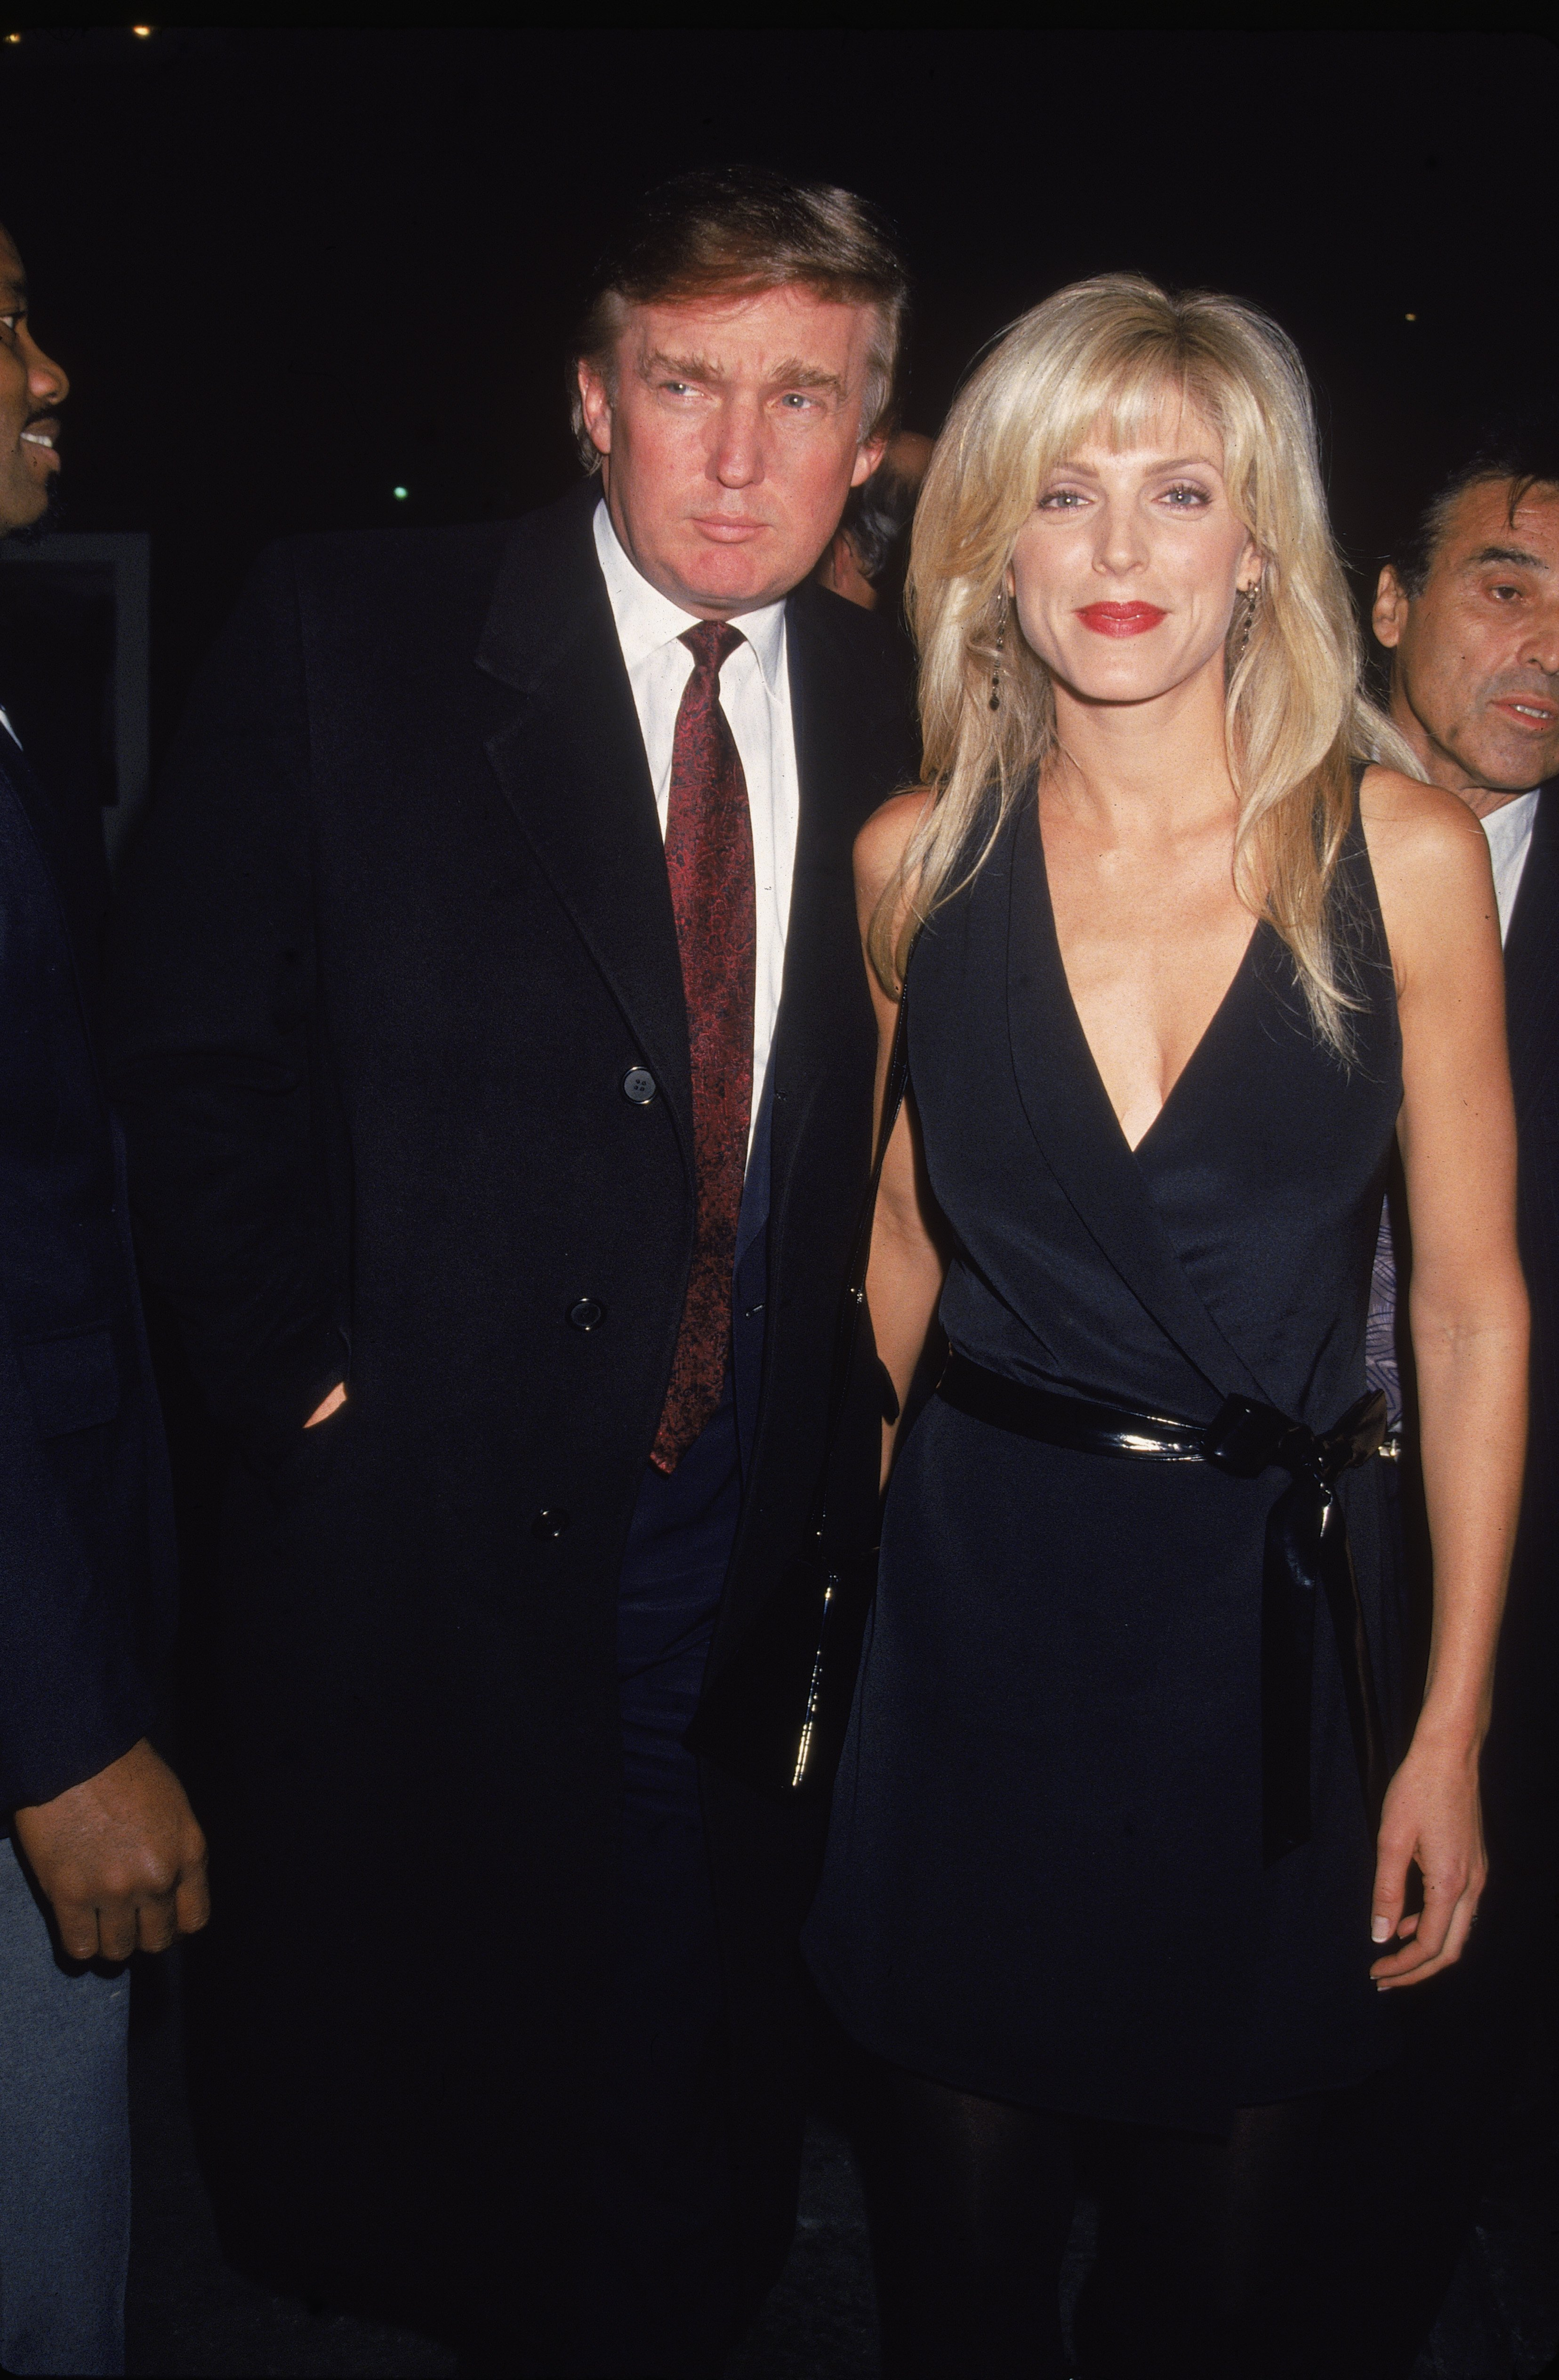 Donald Trump and Marla Maples attend the premiere of the film 'Nell' in New York City on May 1994. | Source: Getty Images